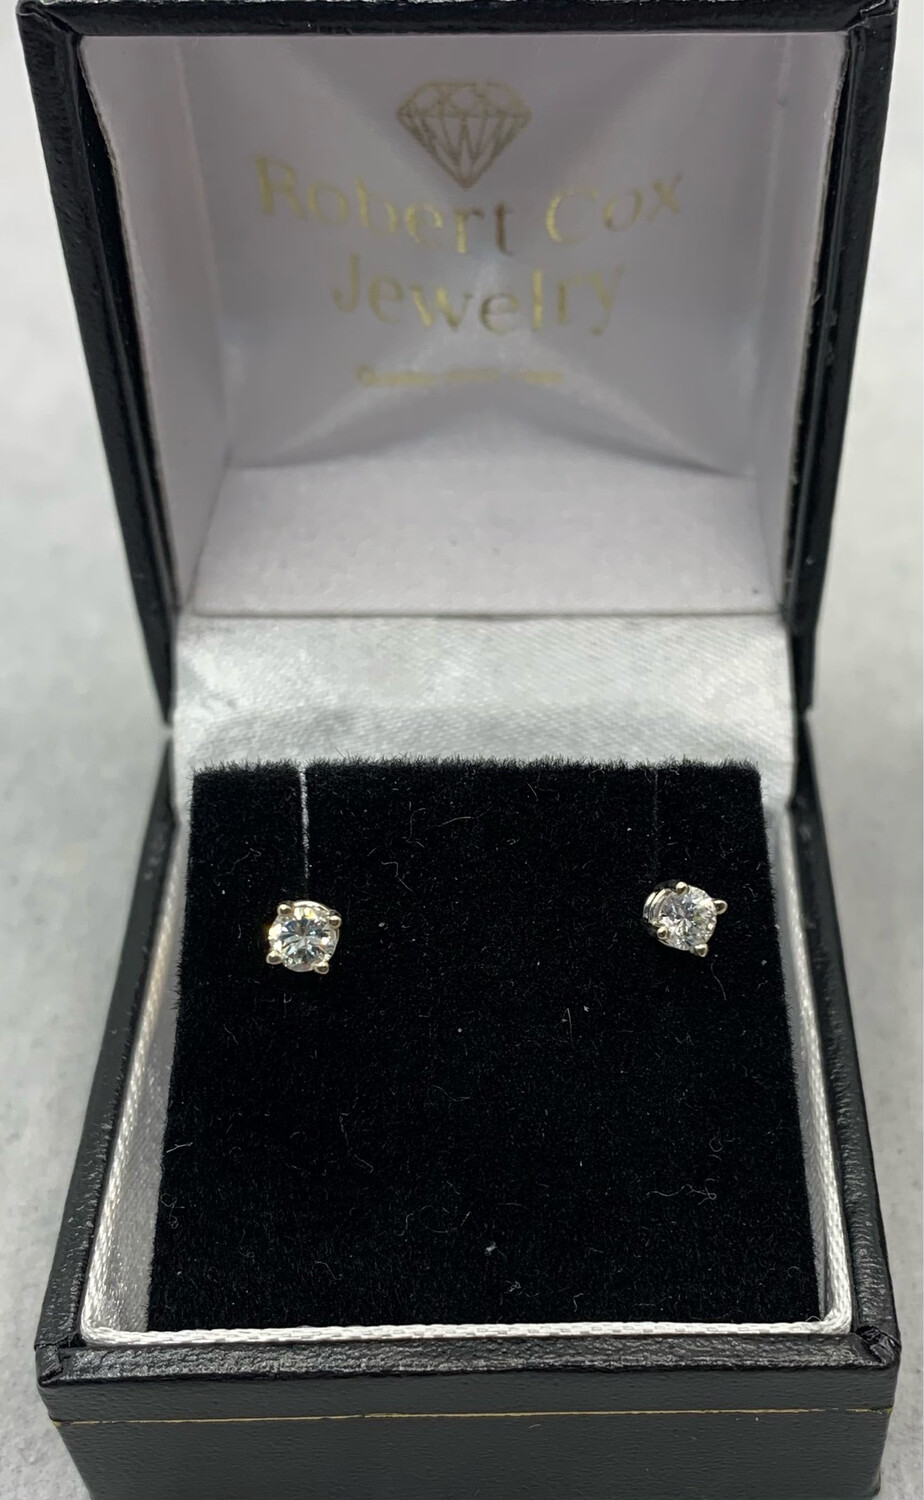 34 Pts Total Weight Brilliant Cut Diamond Studs 14kt White Gold